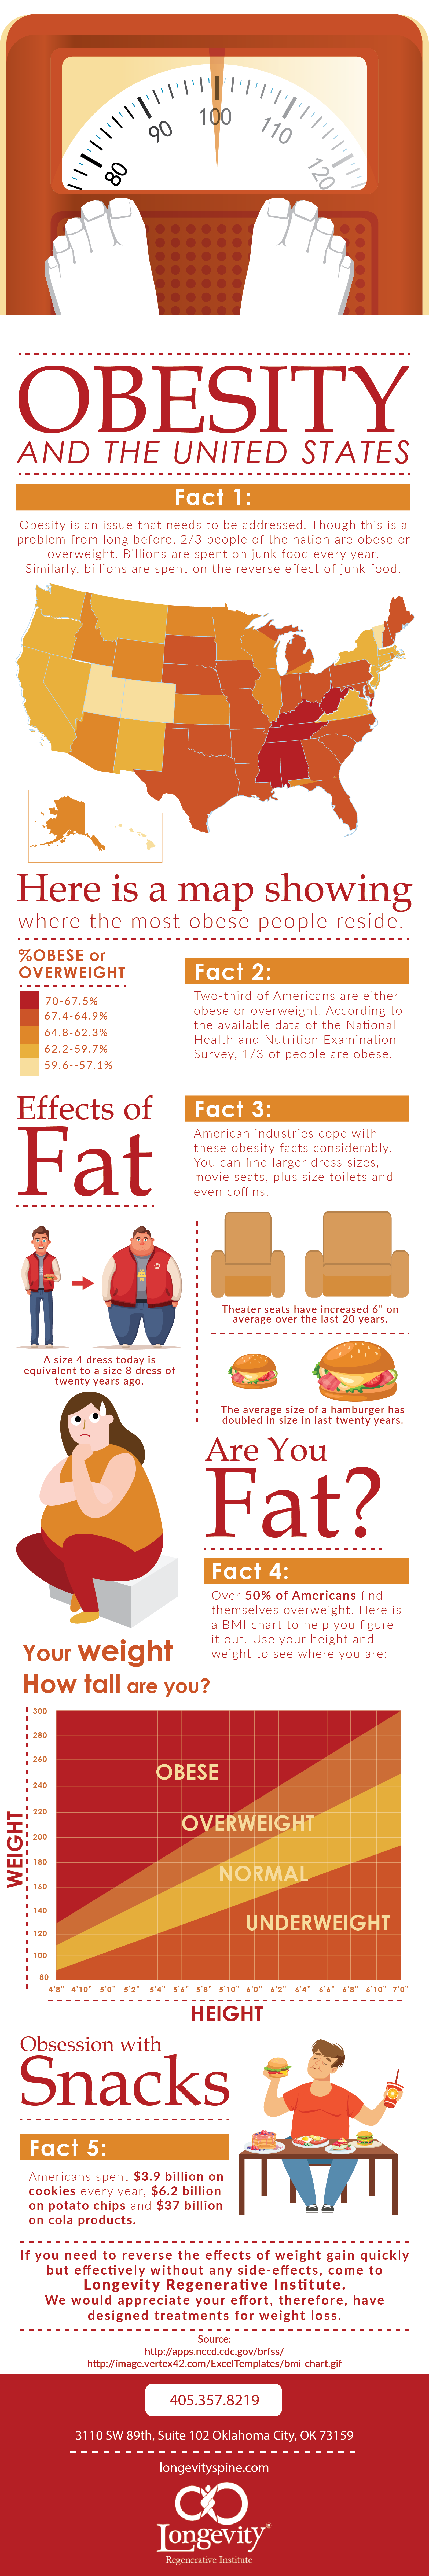 Obesity and the United States.png